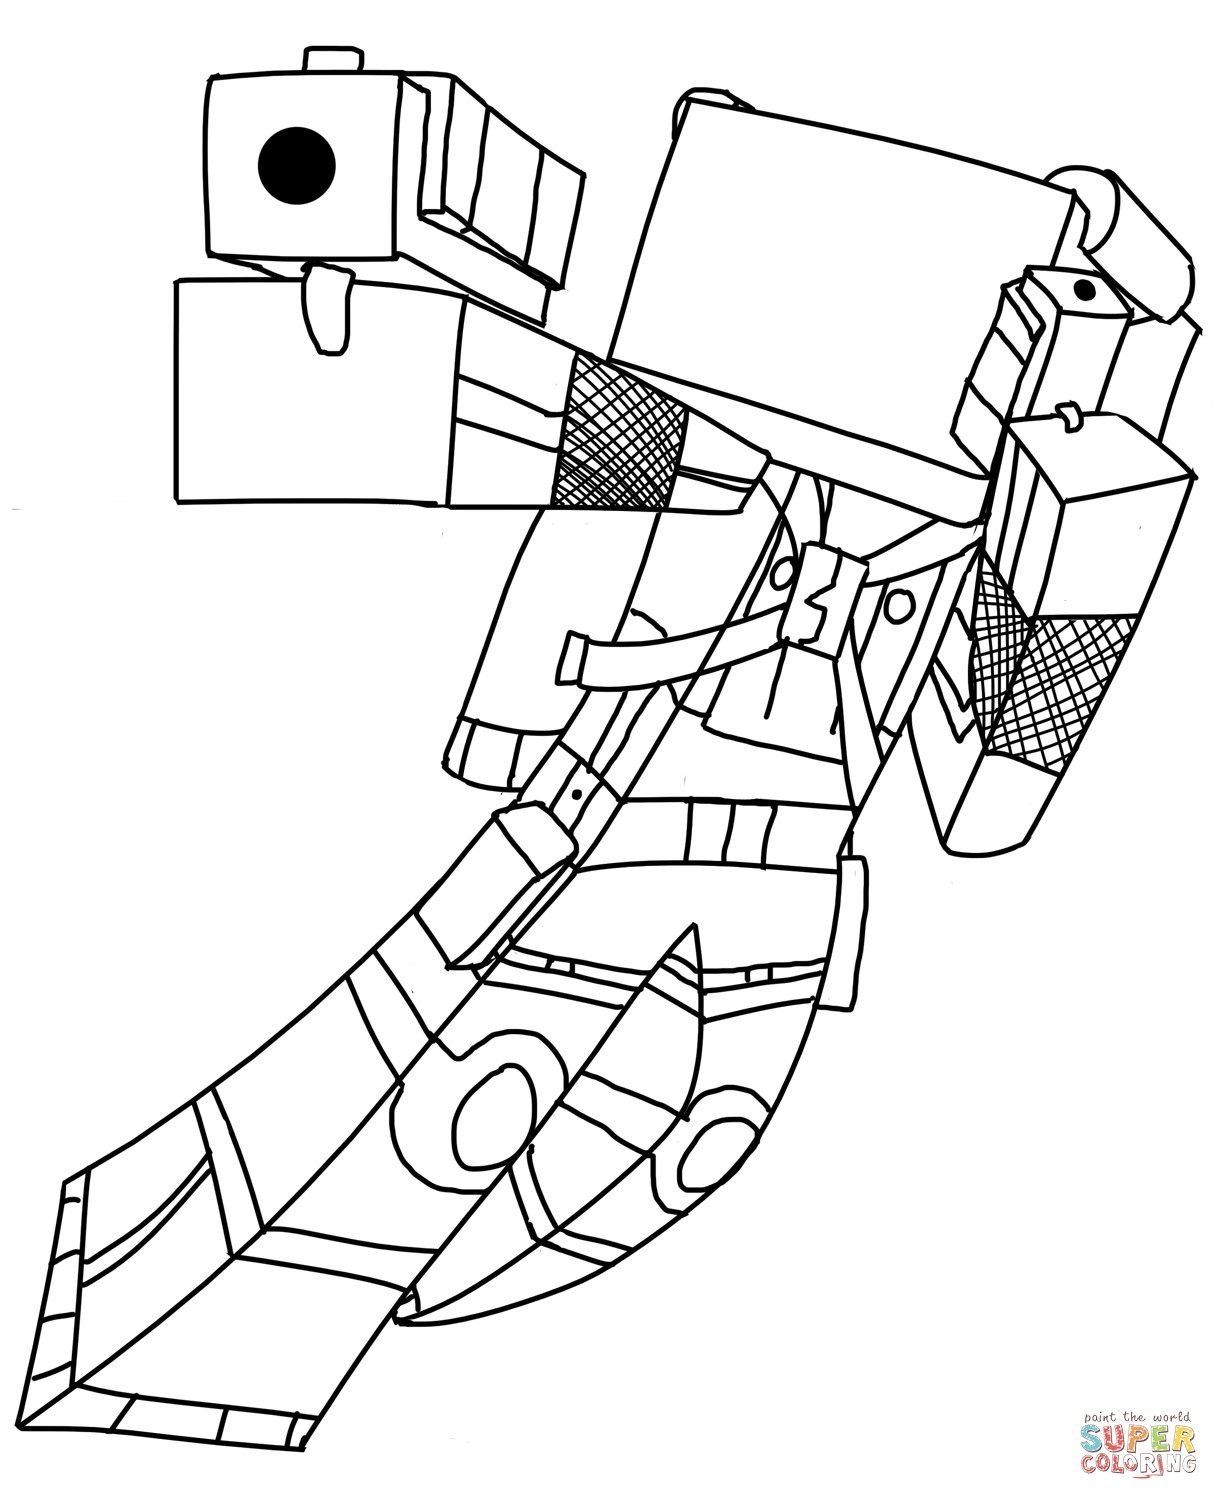 colouring pages of minecraft minecraft for kids minecraft kids coloring pages colouring minecraft pages of